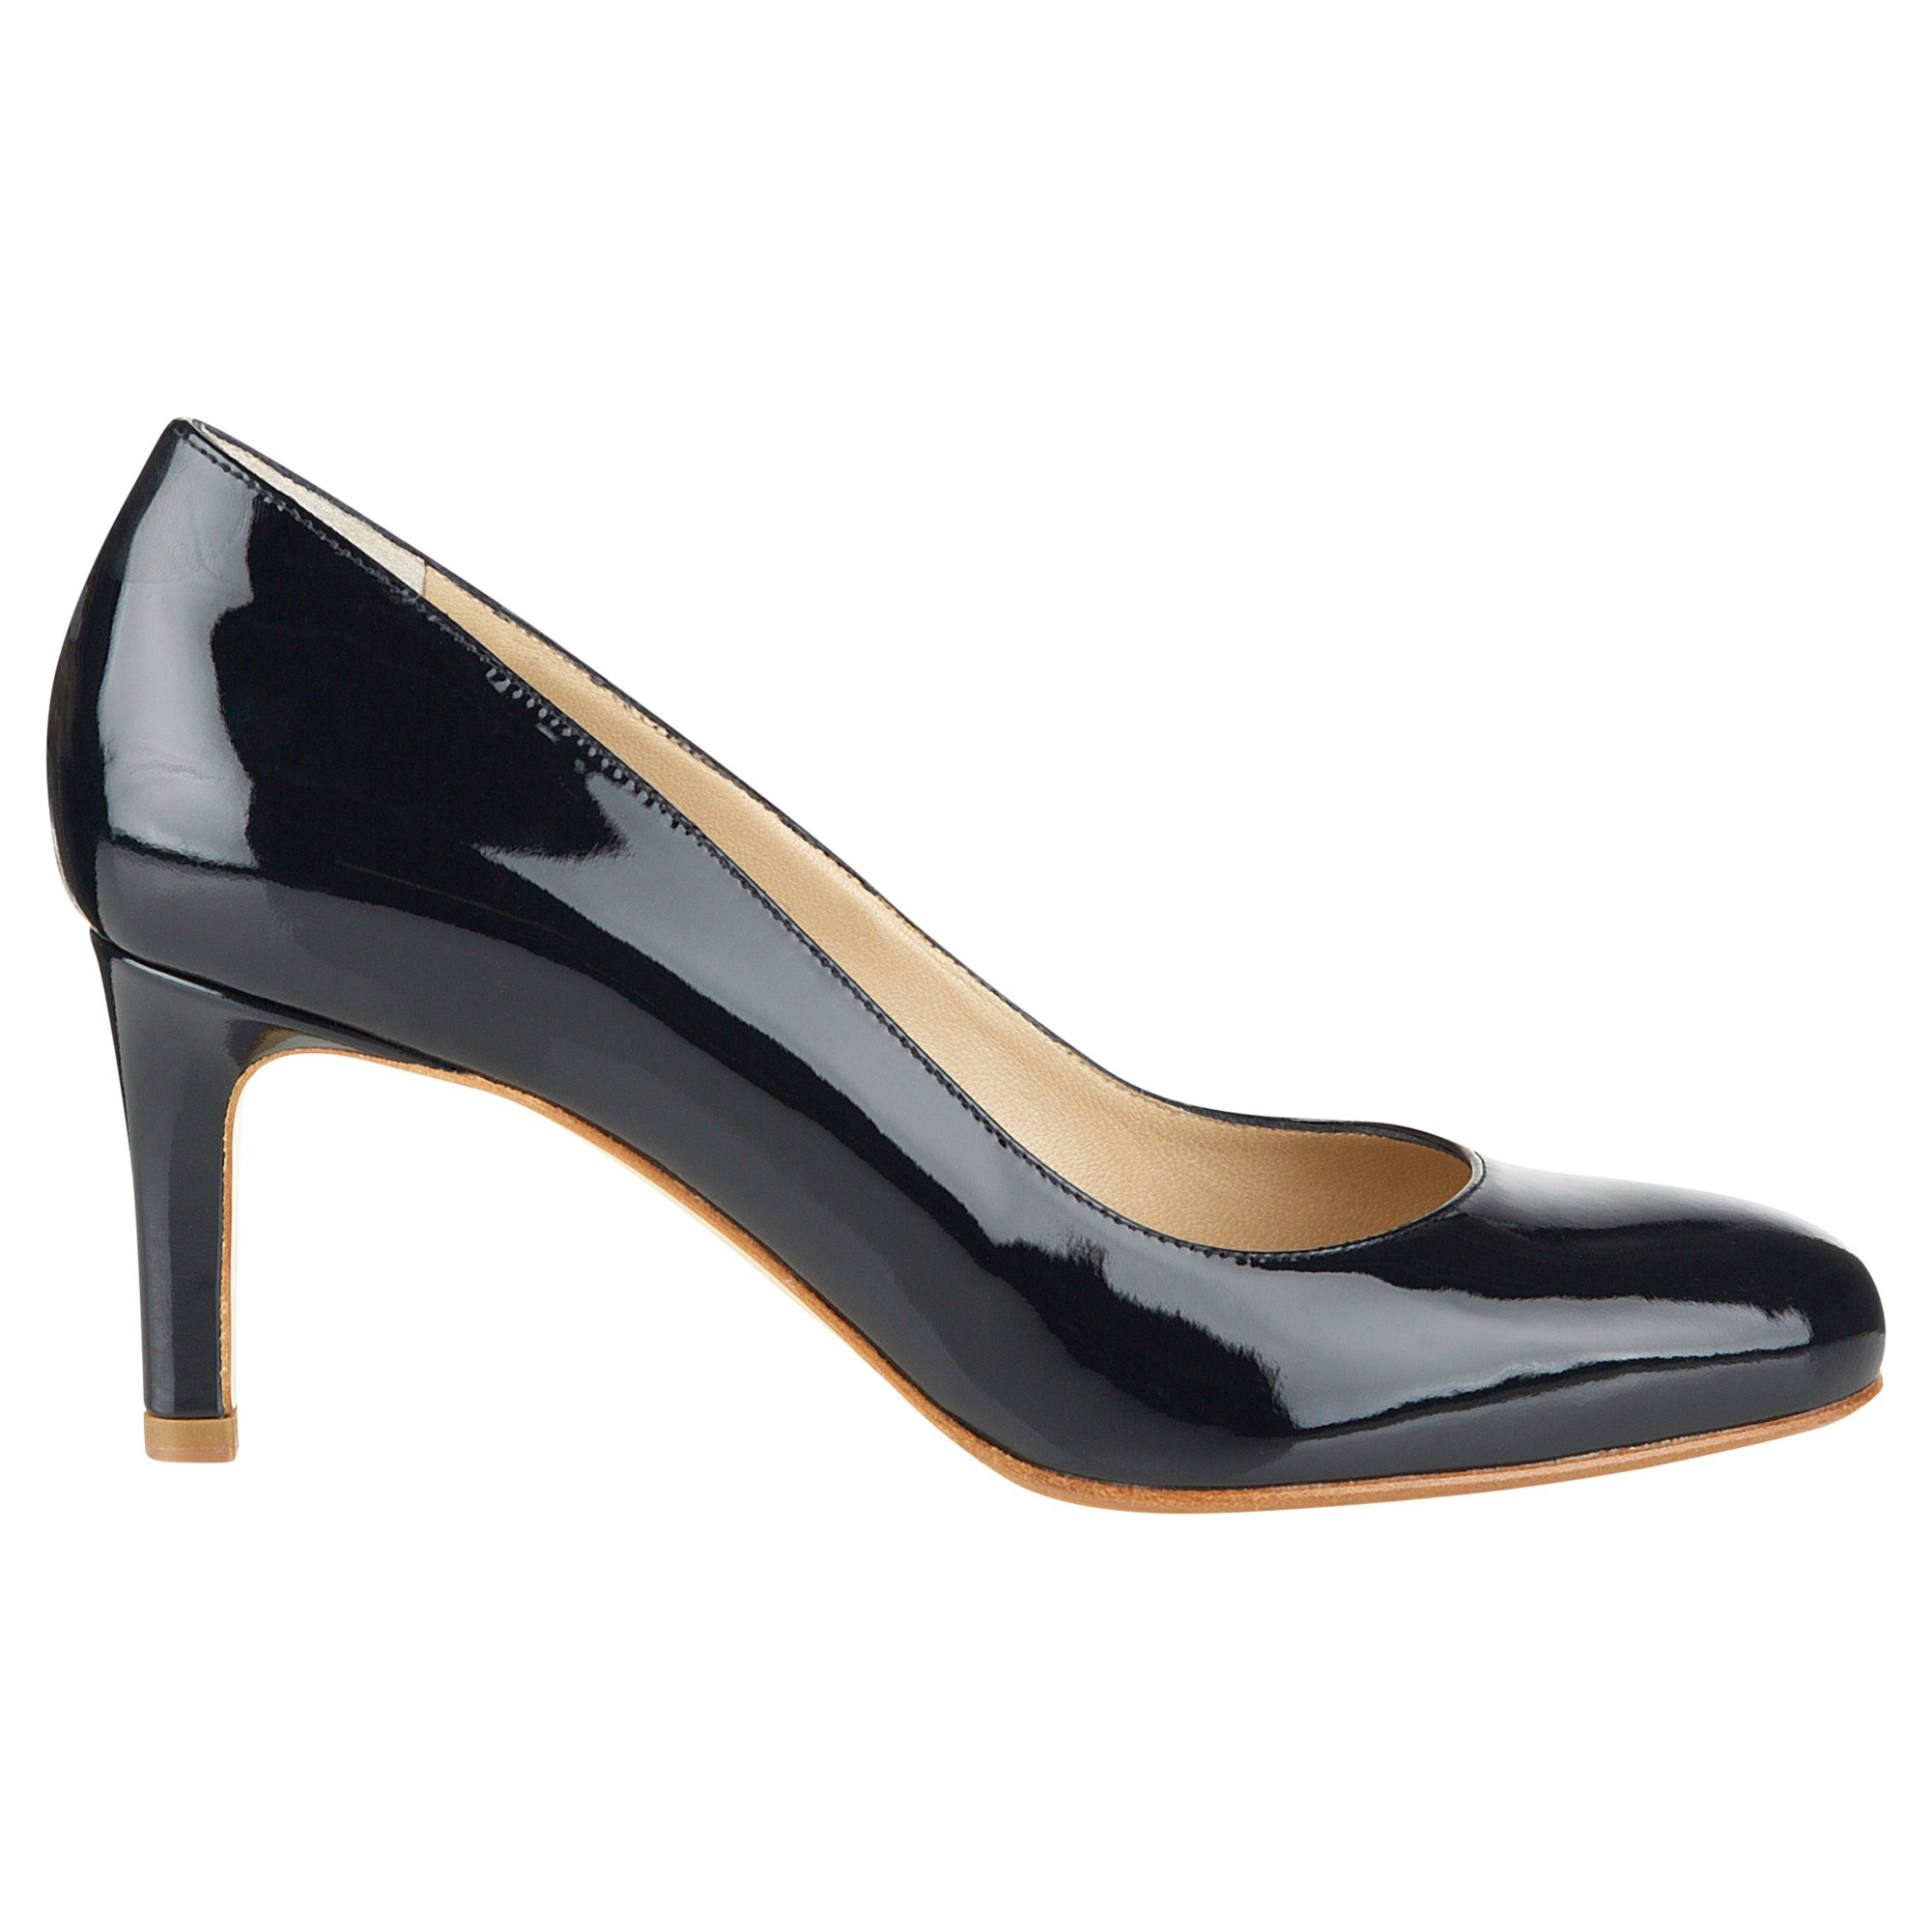 eb93f3eb4 Hobbs Lizzie Leather Court Shoes in Blue - Lyst